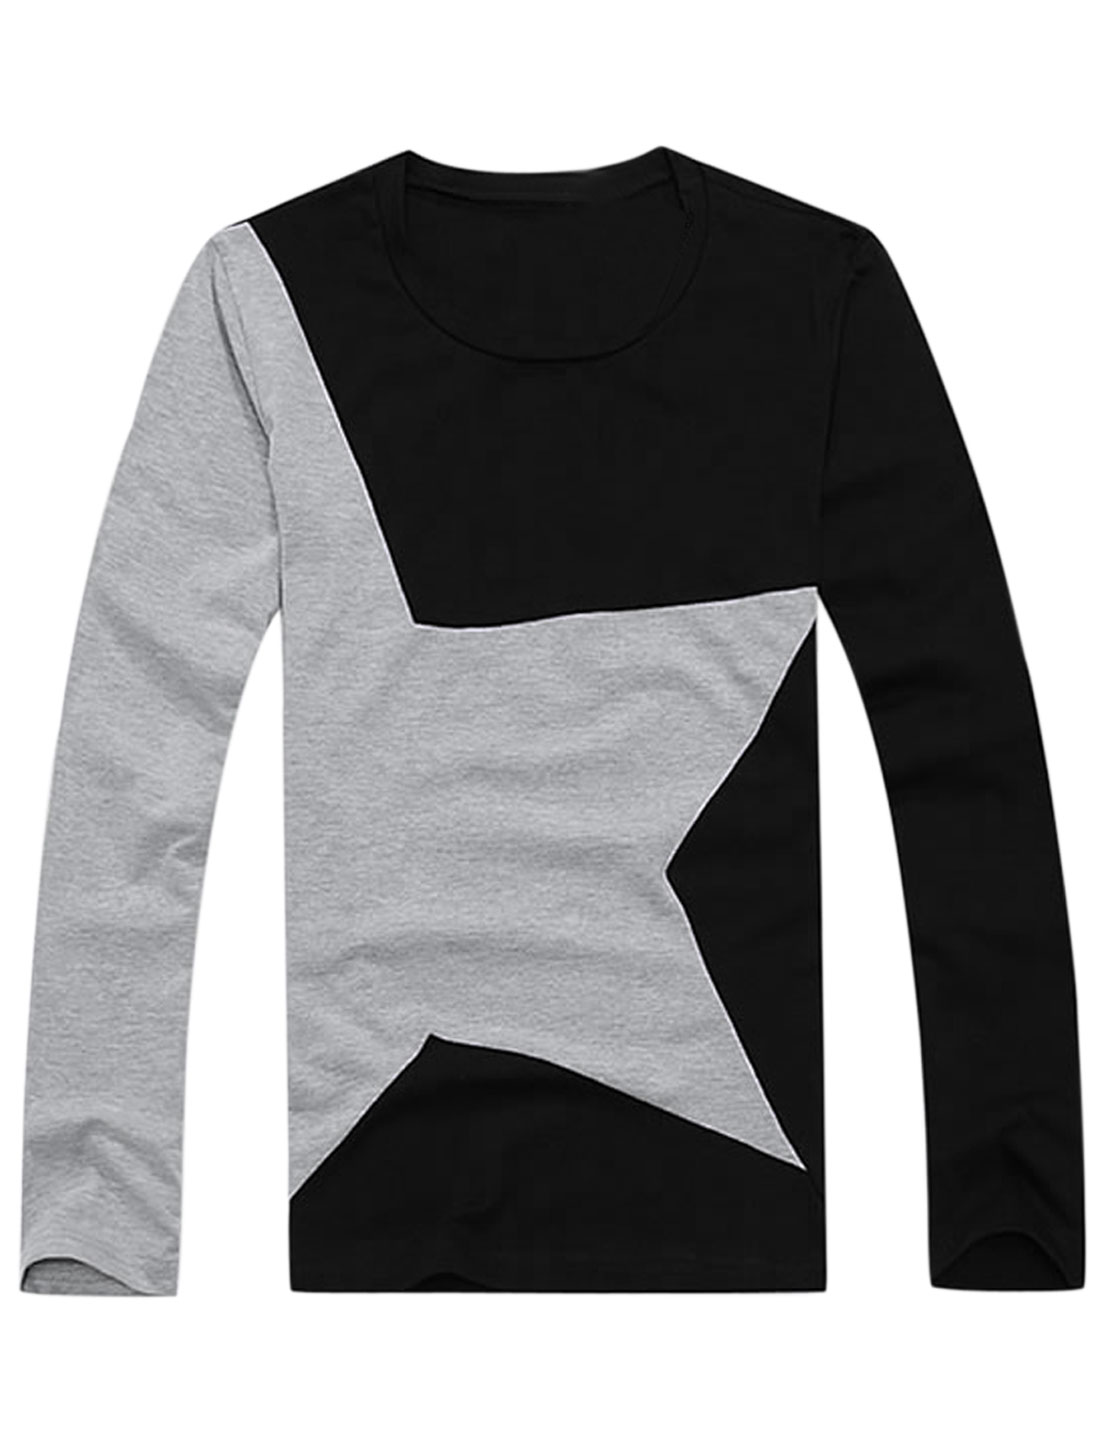 Men Long Sleeve Star Prints Colorblock Simple T-Shirt Black M